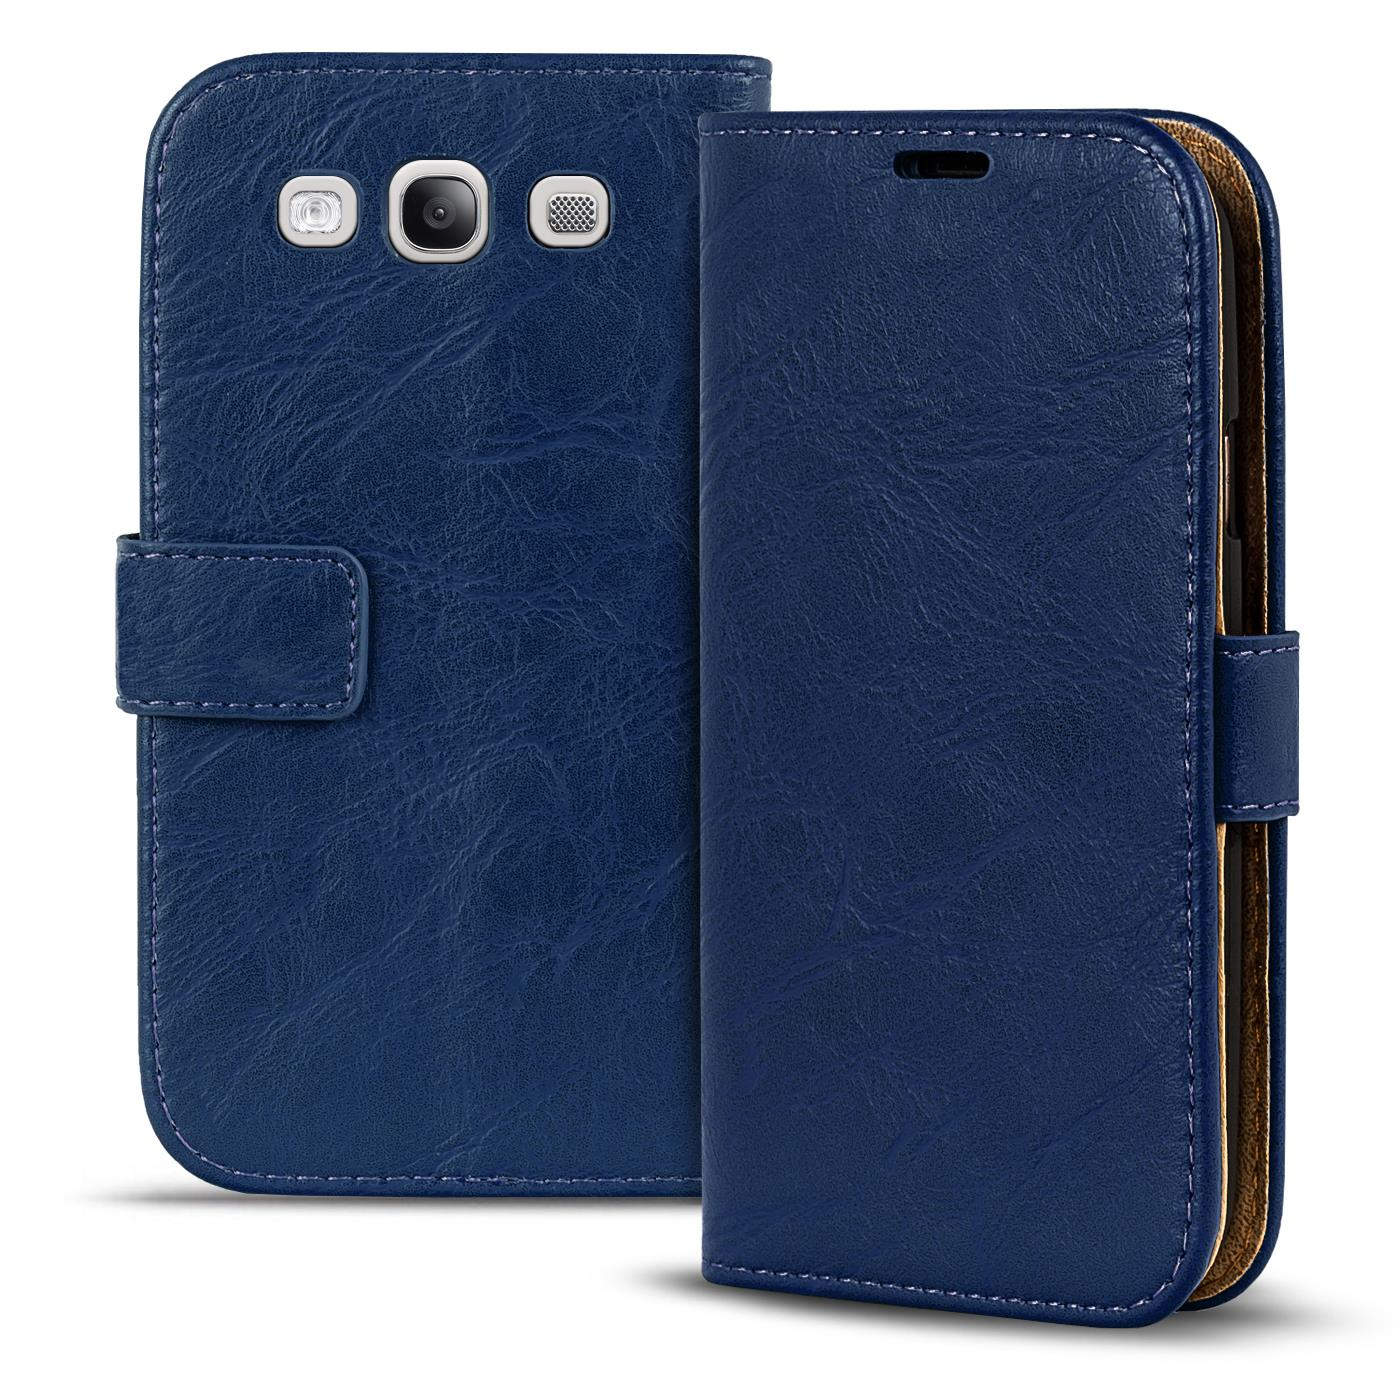 super popular 41b7b 9af94 Mobile Phone Case Samsung Galaxy S3 Neo Flip Cover Protective Wallet